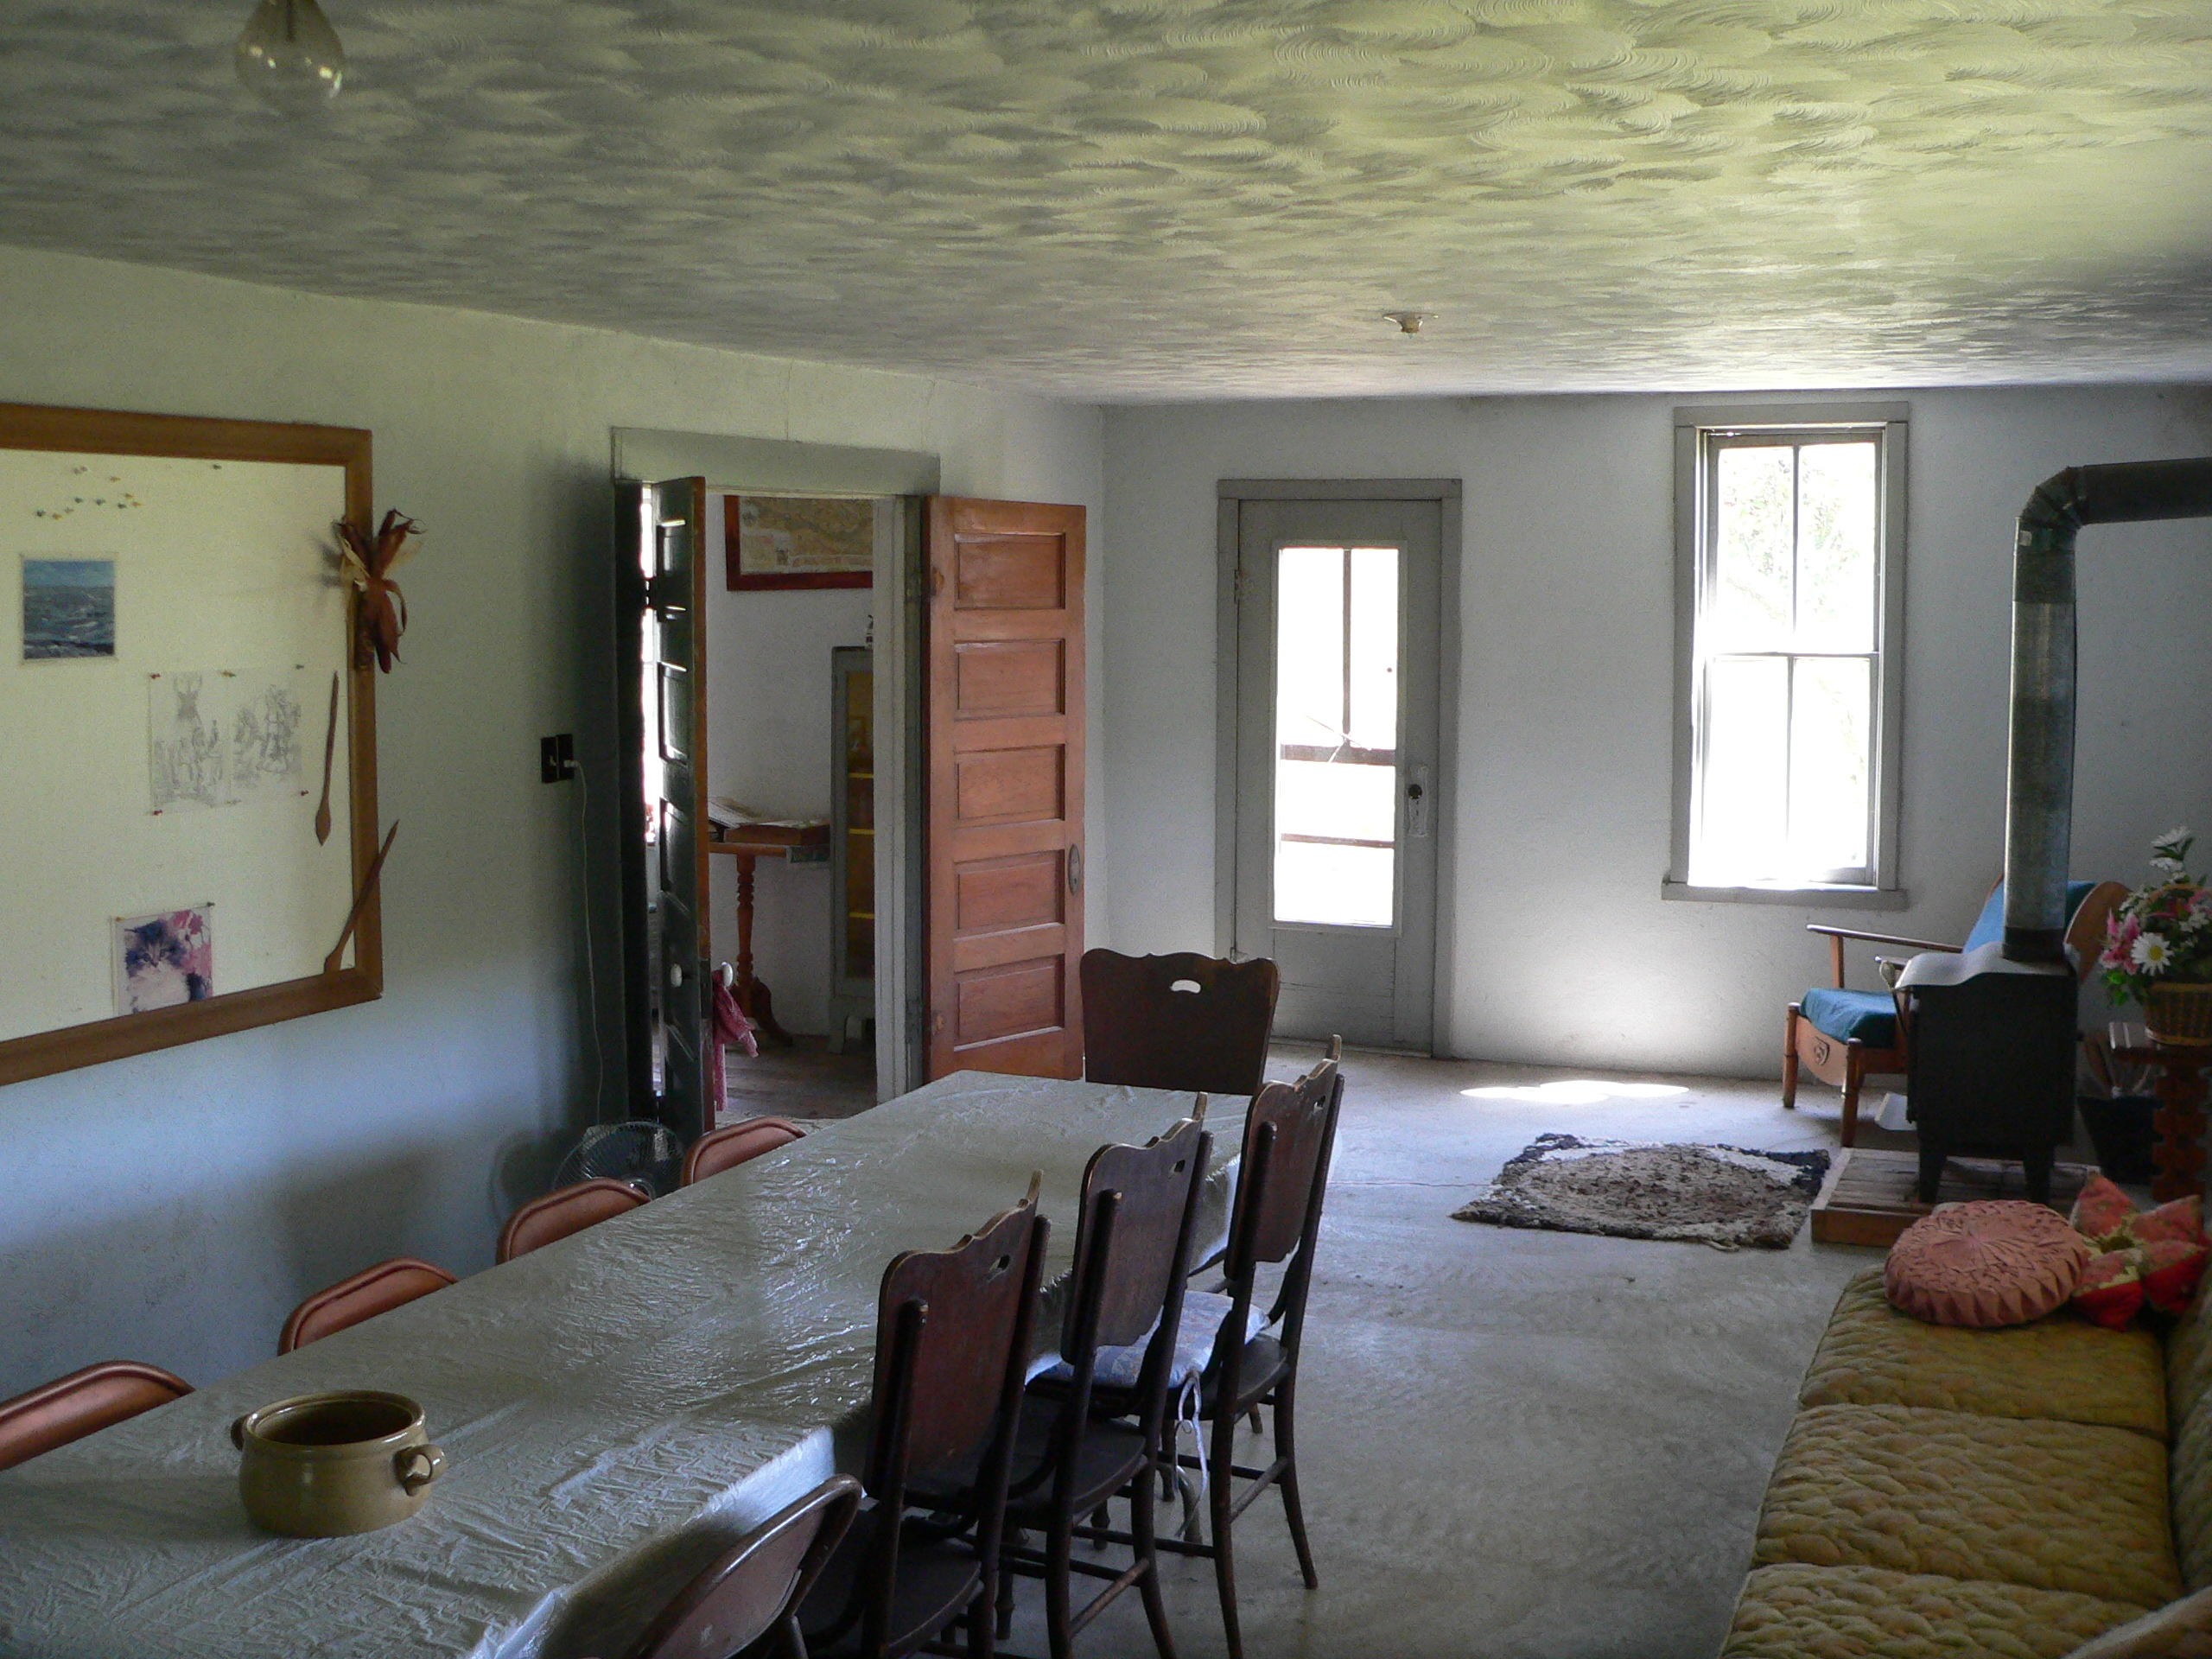 file dowse sod house interior w room face se jpg